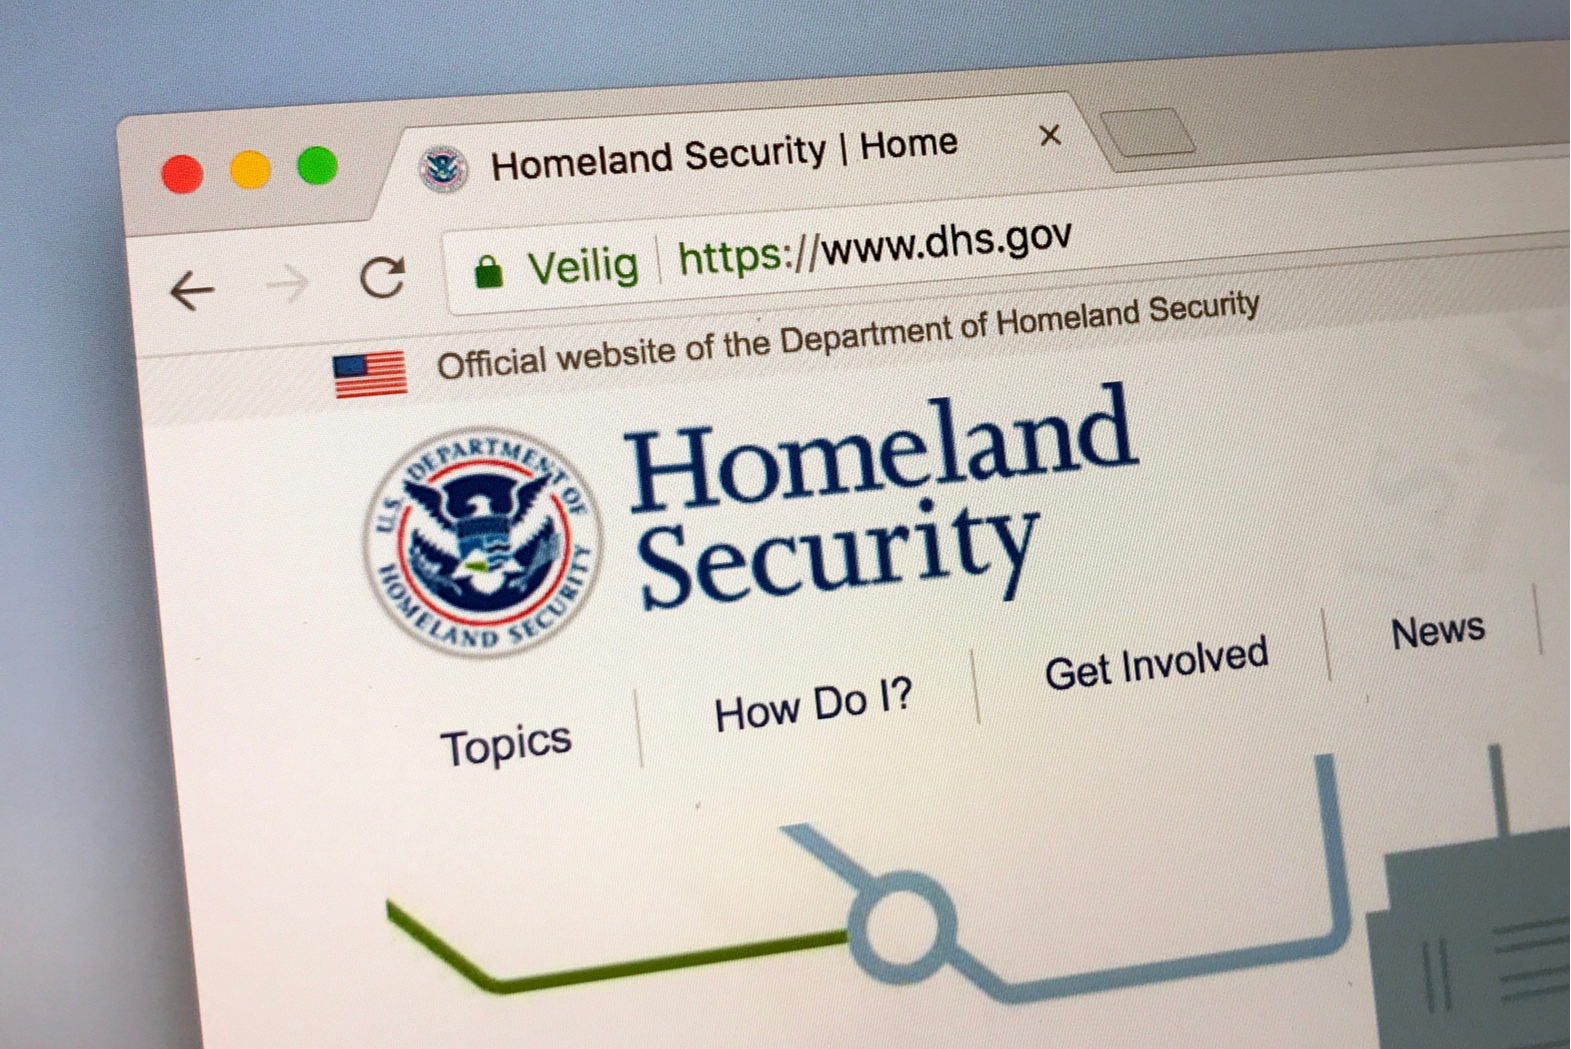 DHS warns of El Paso and Dayton shooting-related cybercrime campaigns